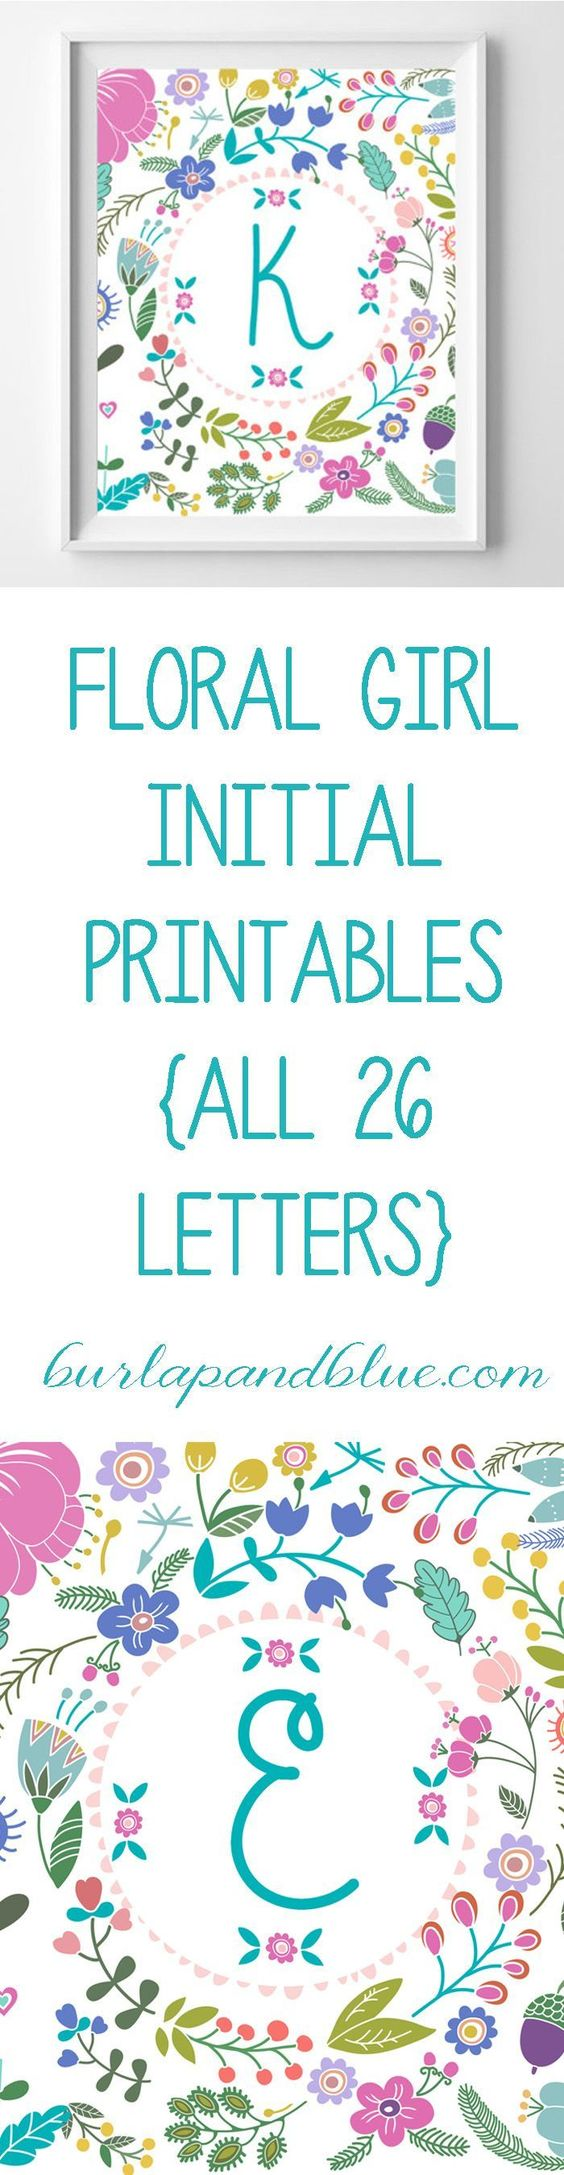 Beautiful floral initials for a little girl's nursery or bedroom - free printables!